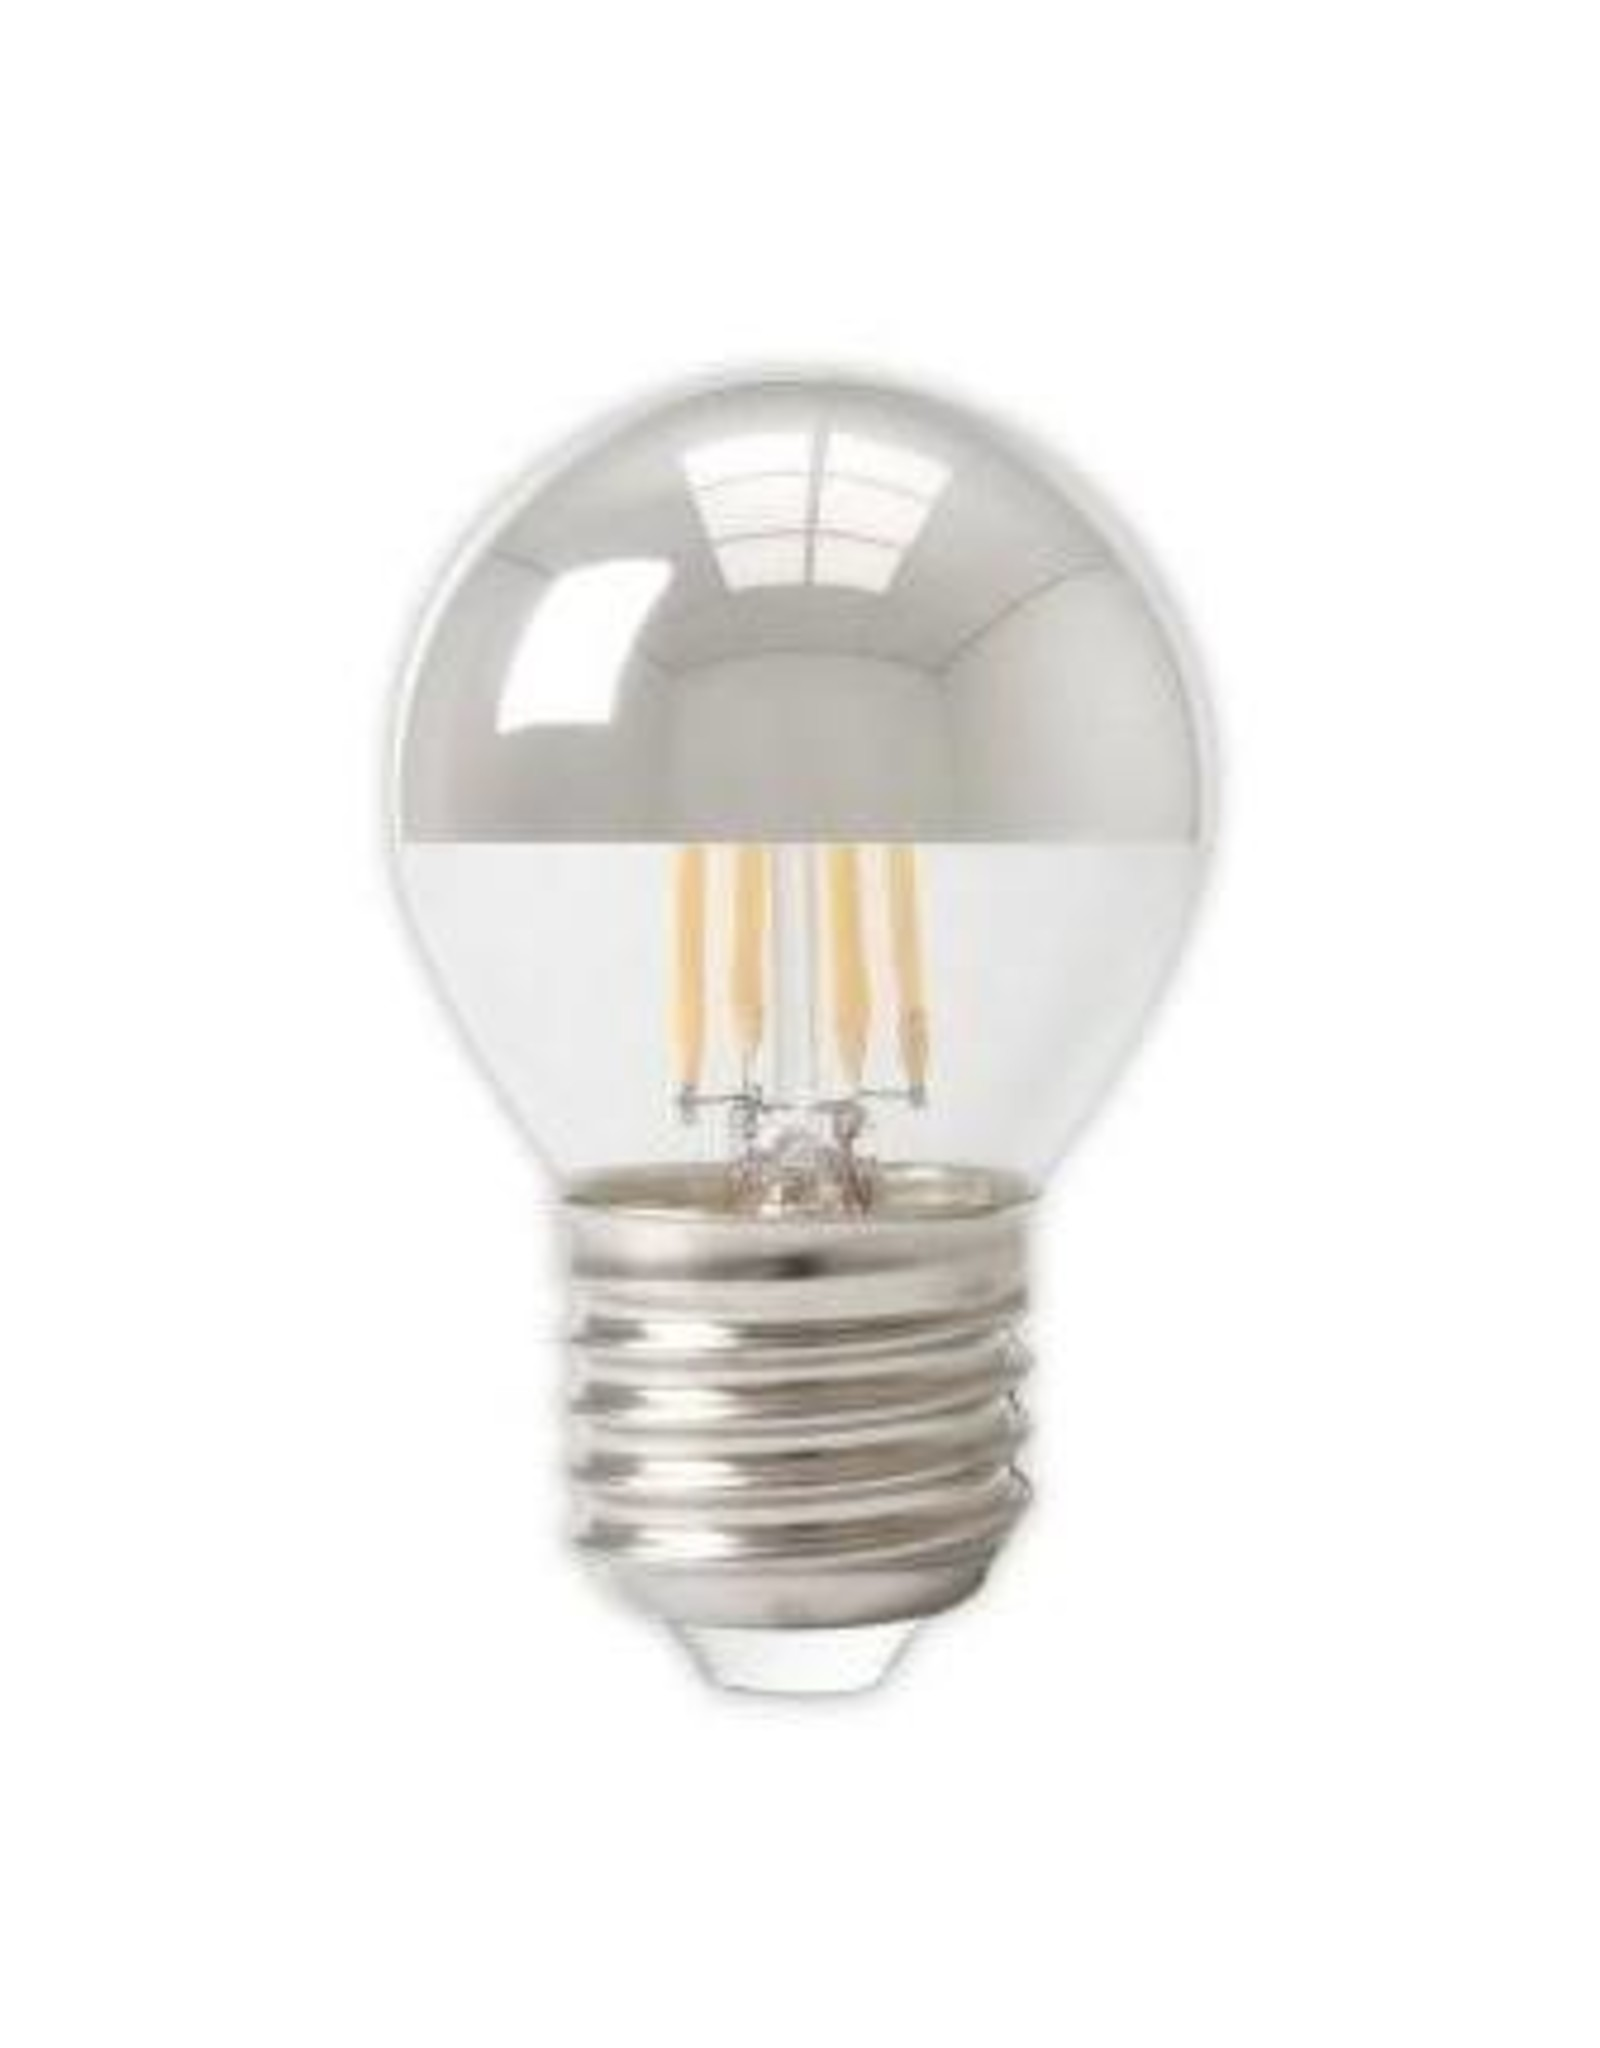 Calex LED Full Glass Top-mirror Filament Ball-lamp 220-240V 4W 310lm E27 P45, Chrome 2700K CRI80 Dimmable, energy label A+